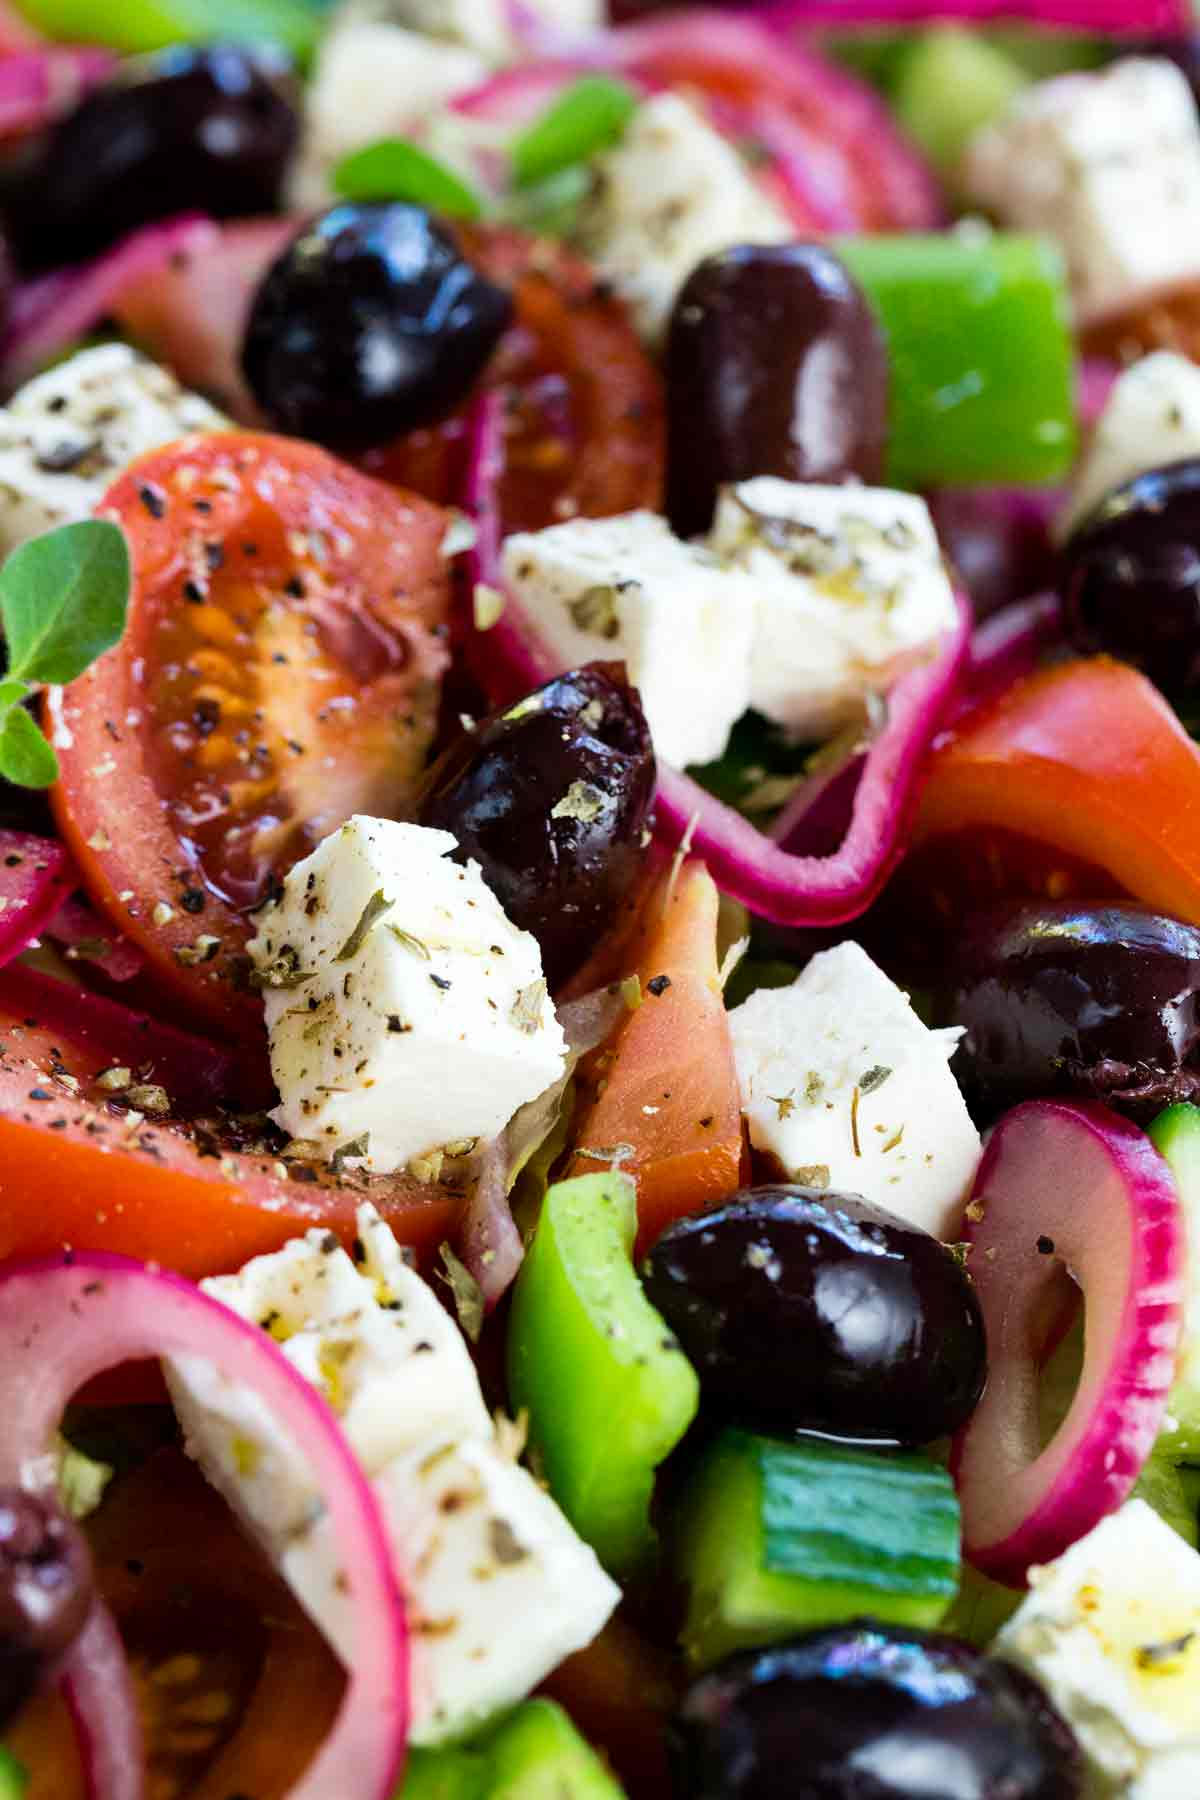 Closeup of tomatoes, feta cheese, olives and other ingredients in a Greek salad